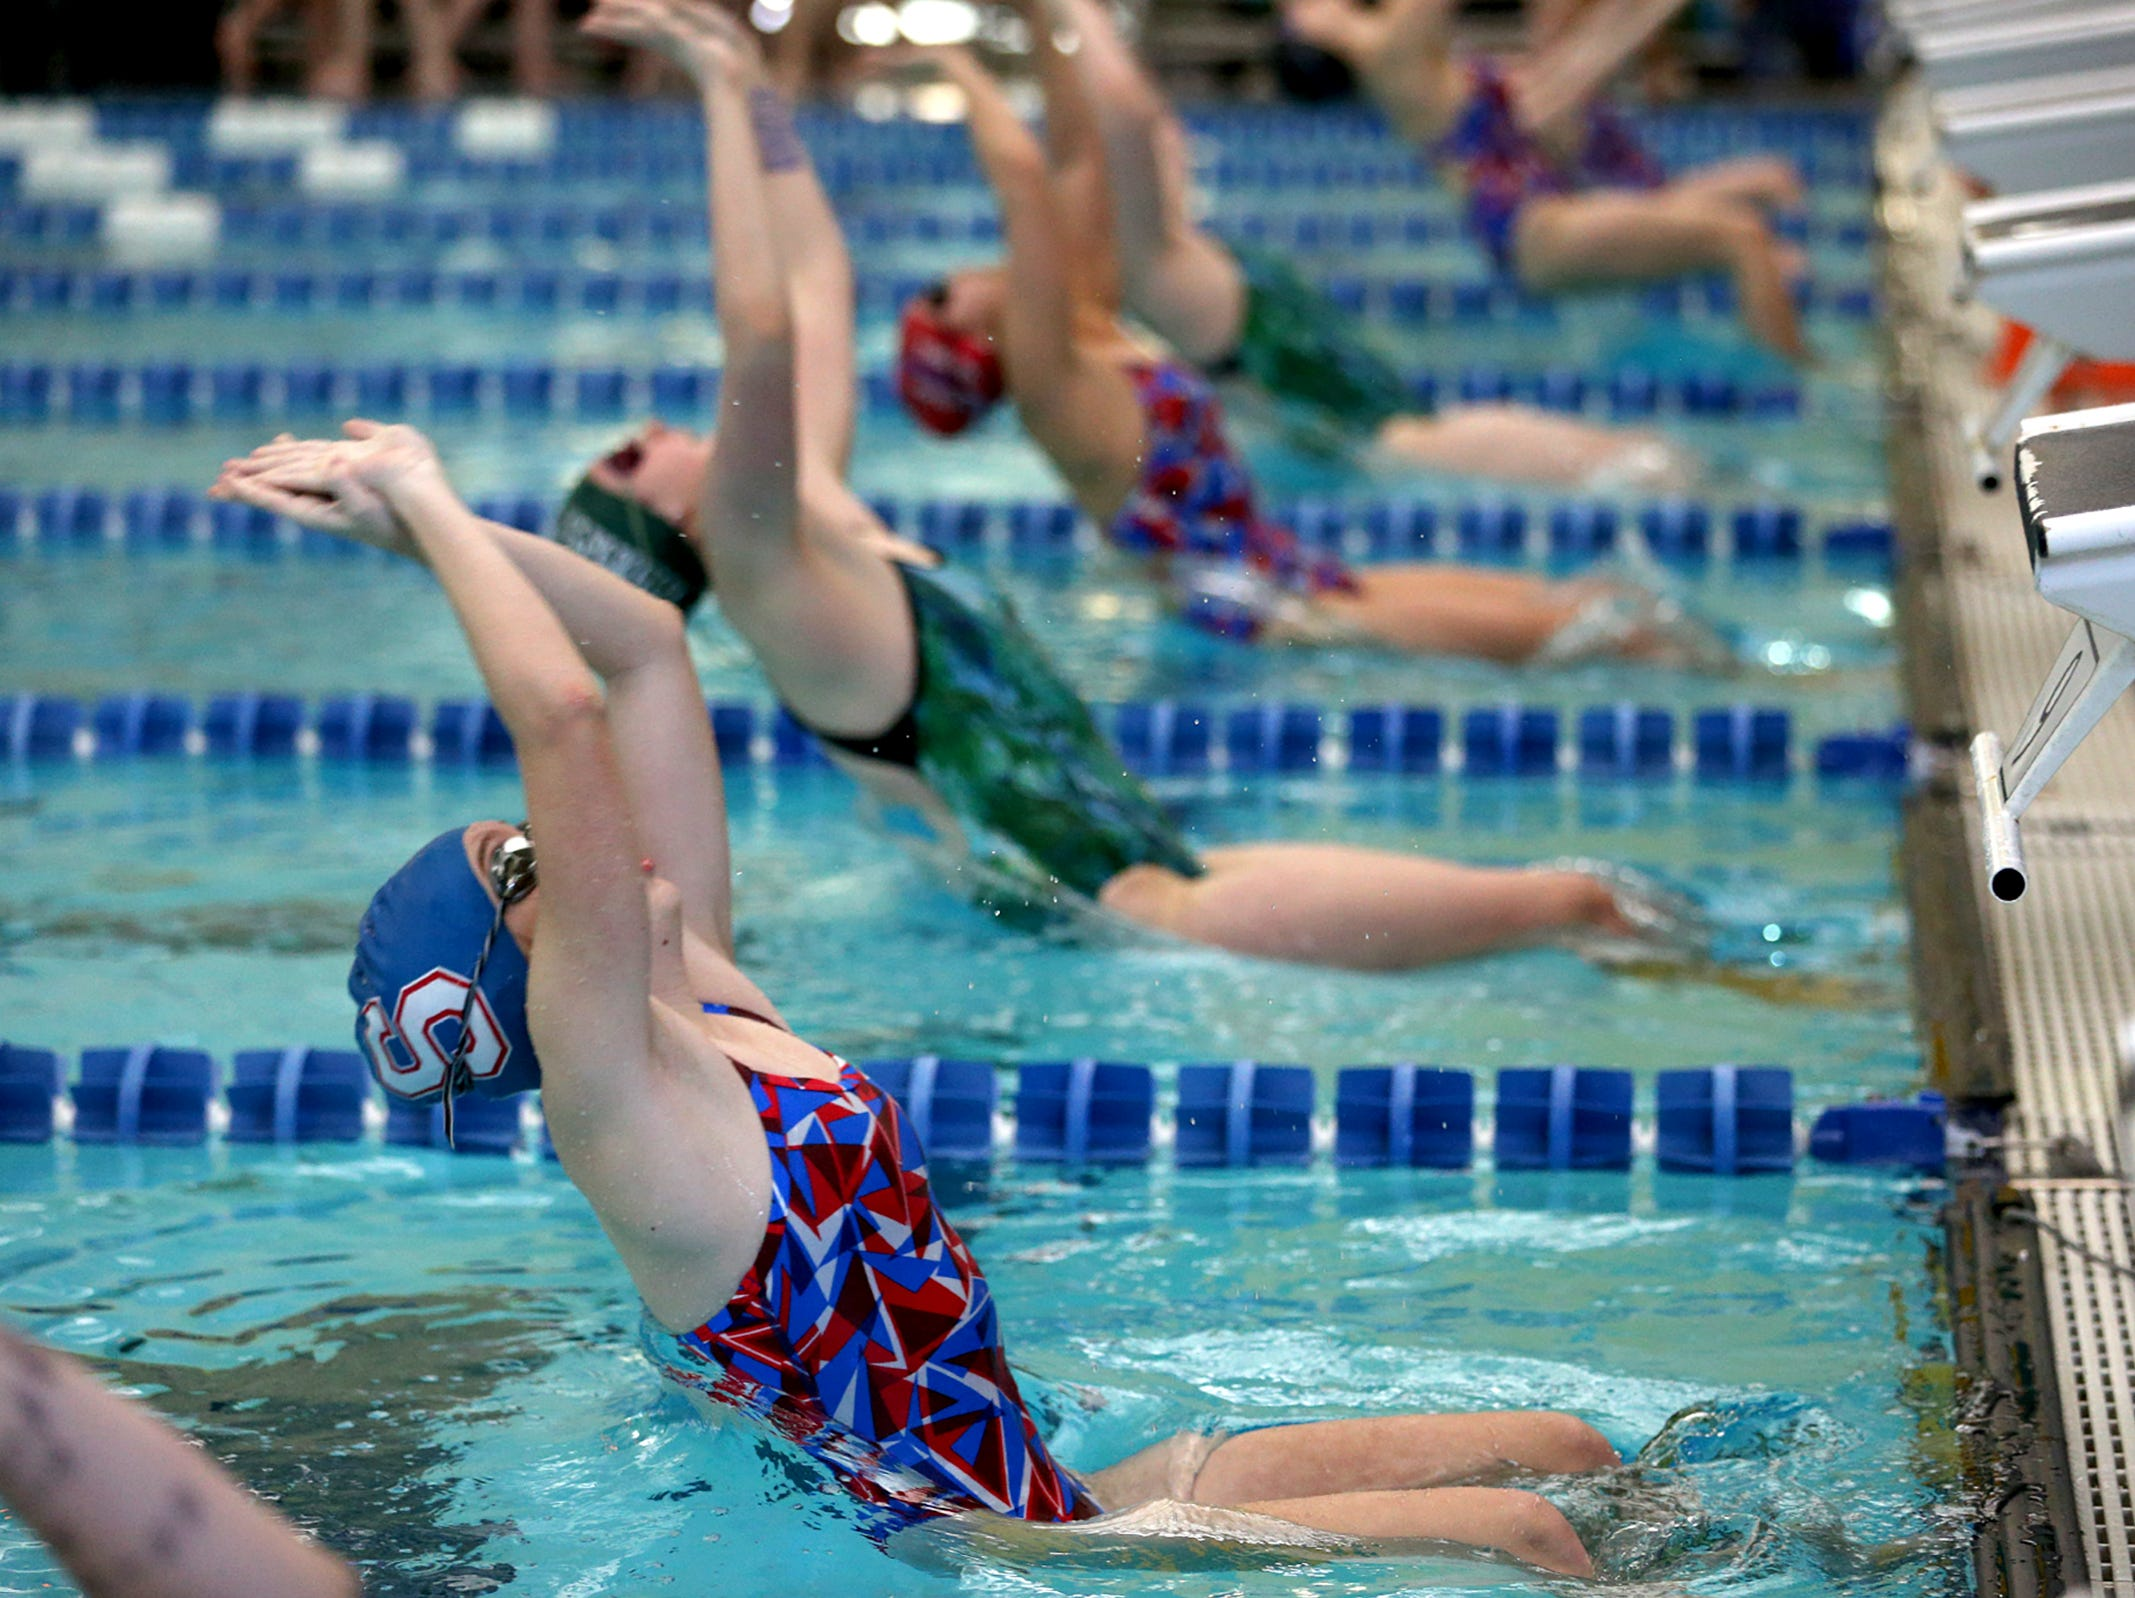 South Salem High School's swim team hosts a dual meet against West Salem at the Kroc Center on Tuesday, Jan. 29, 2019.